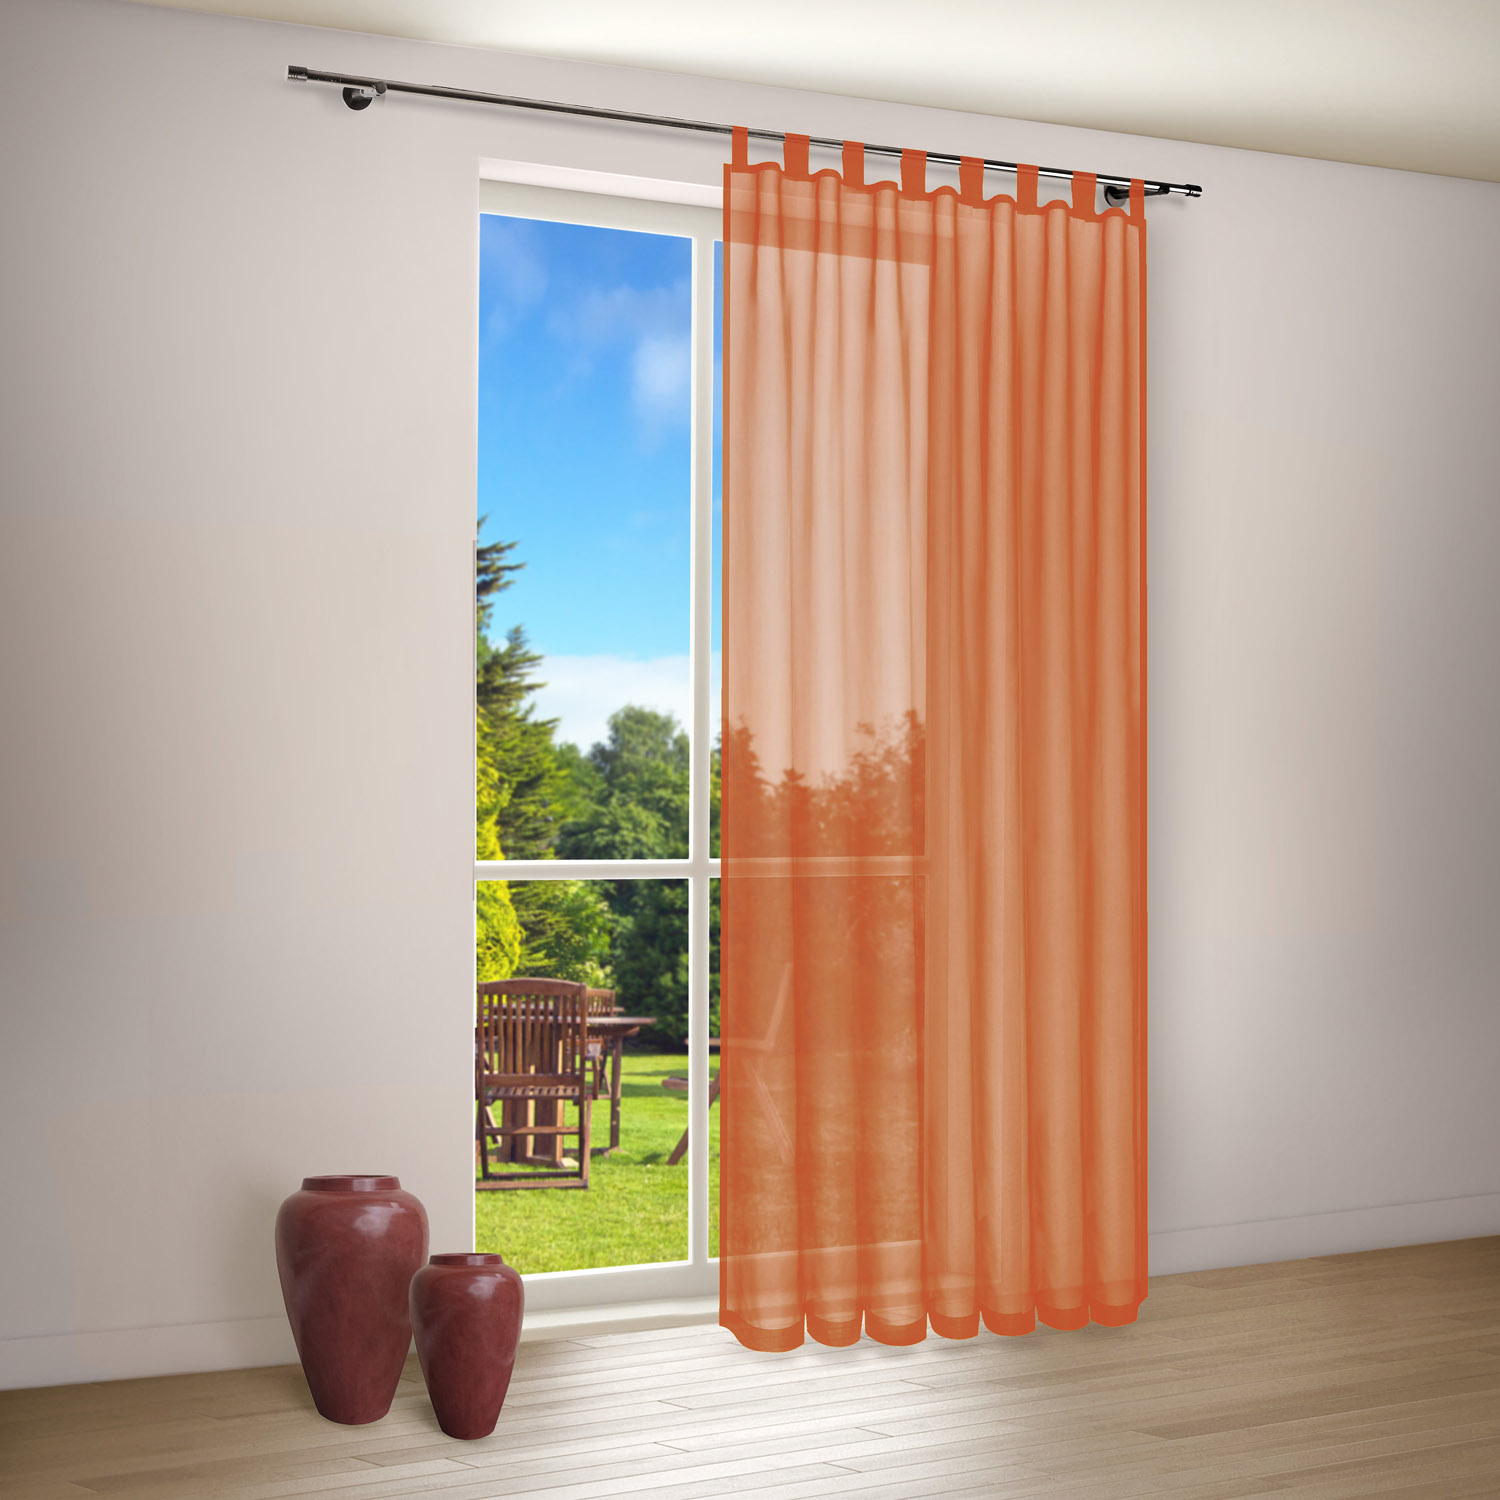 Curtain Tie BacksMagnetic Tie Backs For Curtains